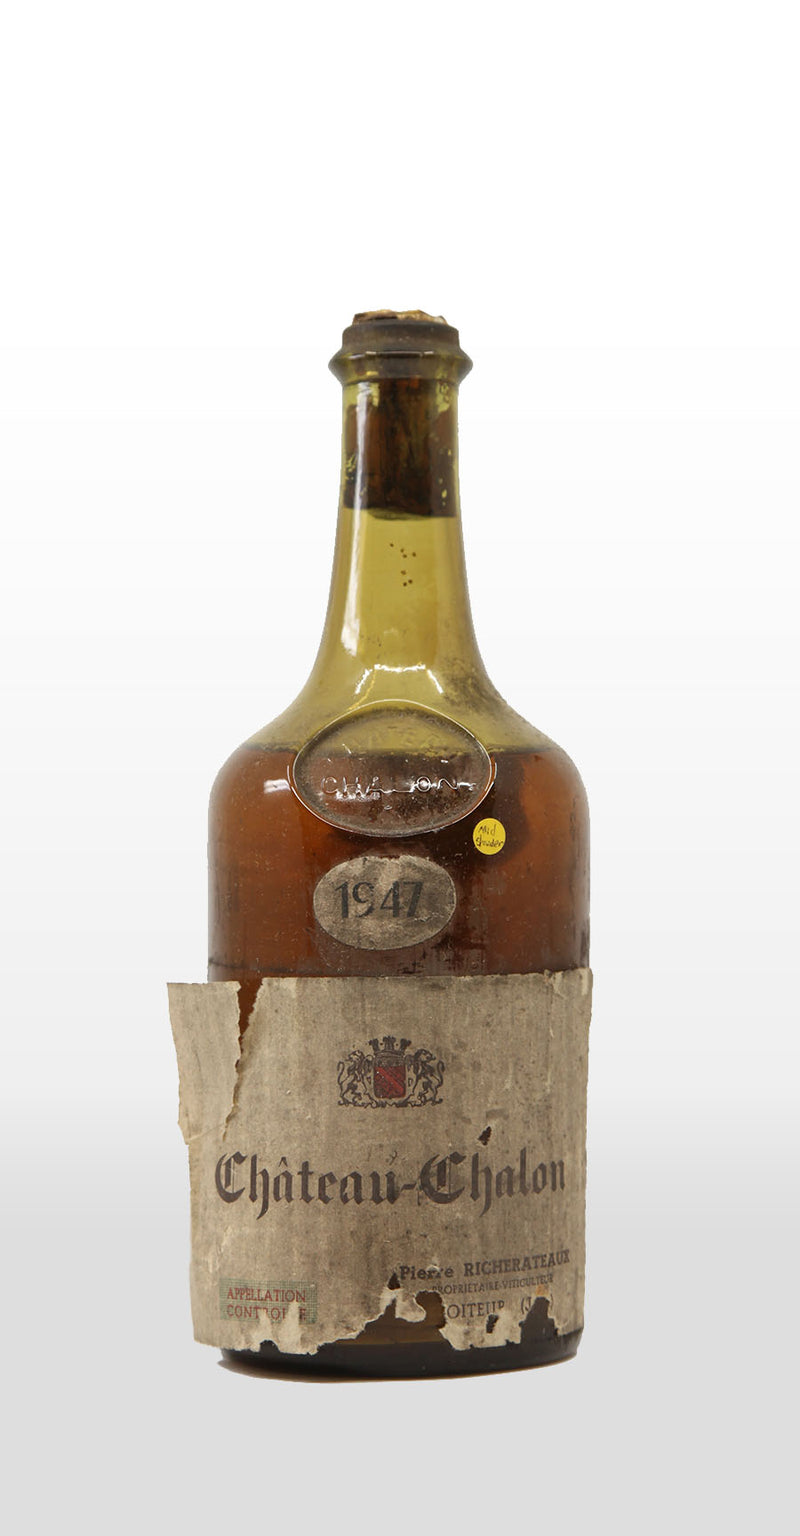 PIERRE RICHERATEAUX CHATEAU-CHALON 1947 (MID SHOULDER) 620ML